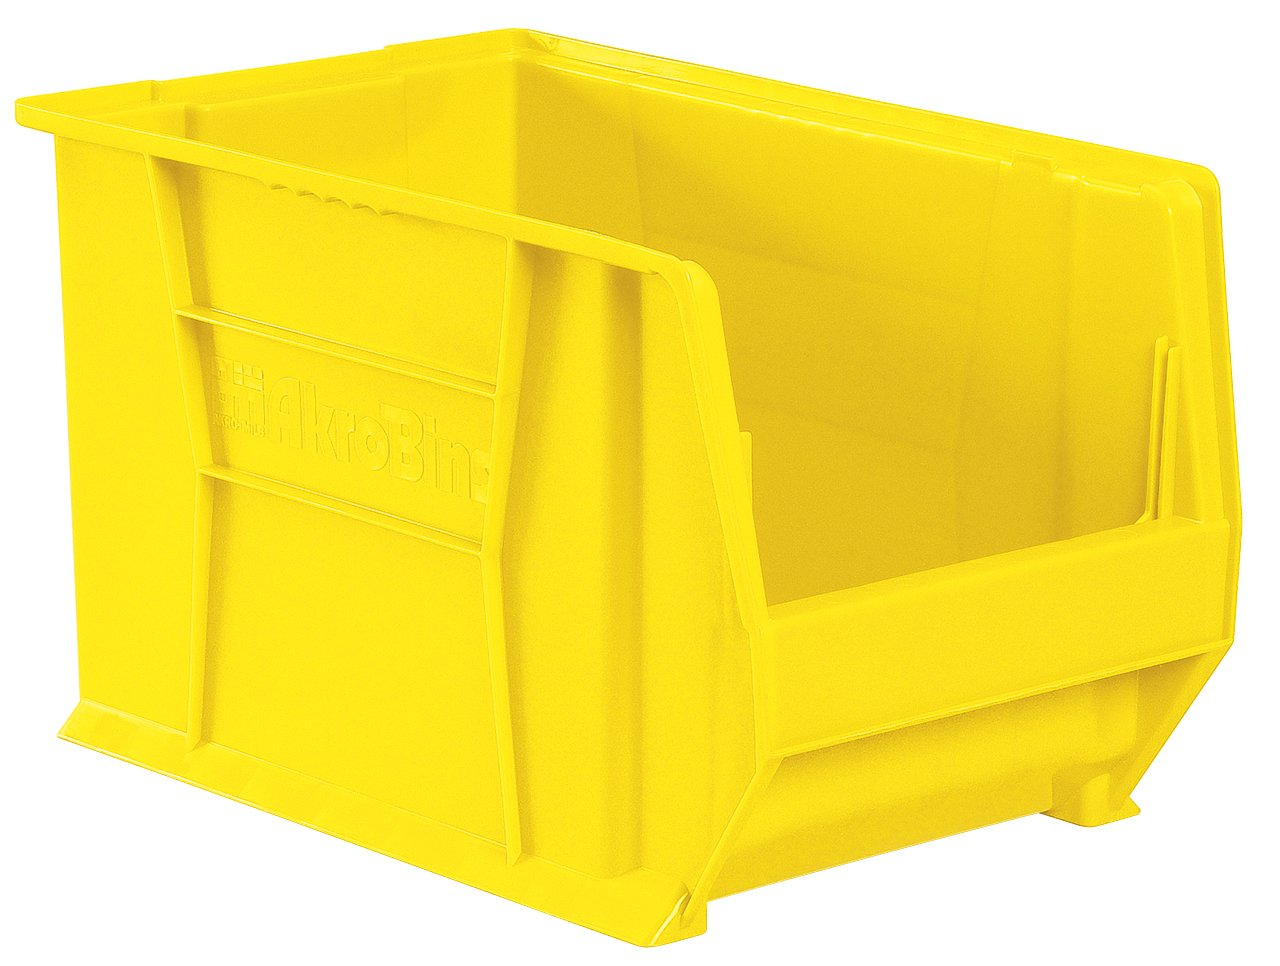 Akro-Mils 30283 Super-Size AkroBin Heavy Duty Stackable Storage Bin Plastic Container, (20-Inch L x 18-Inch W x 12-Inch H), Yellow, (1-Pack)